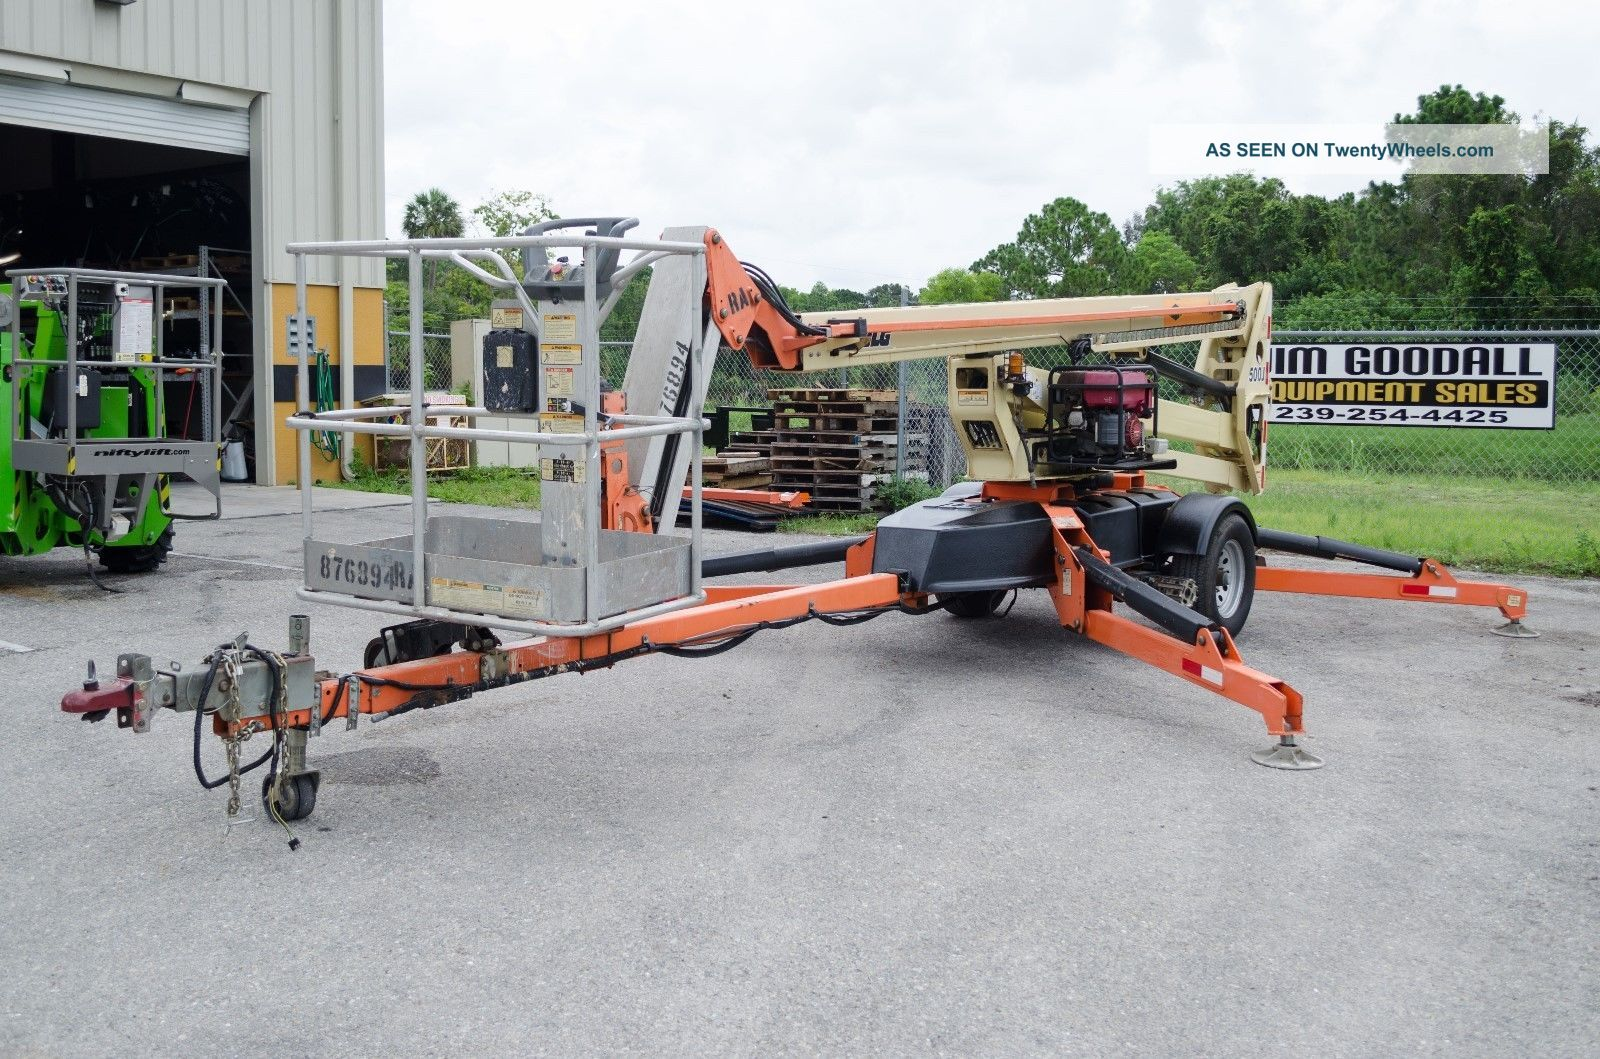 Jlg T500j 56 ' Tow Pro Towable Boom Lift,  W/hydrauic Wheel Drive & Generator,  2011 See more JLG T500J 56' Tow Pro Towable Boom Lift 2012 B... photo